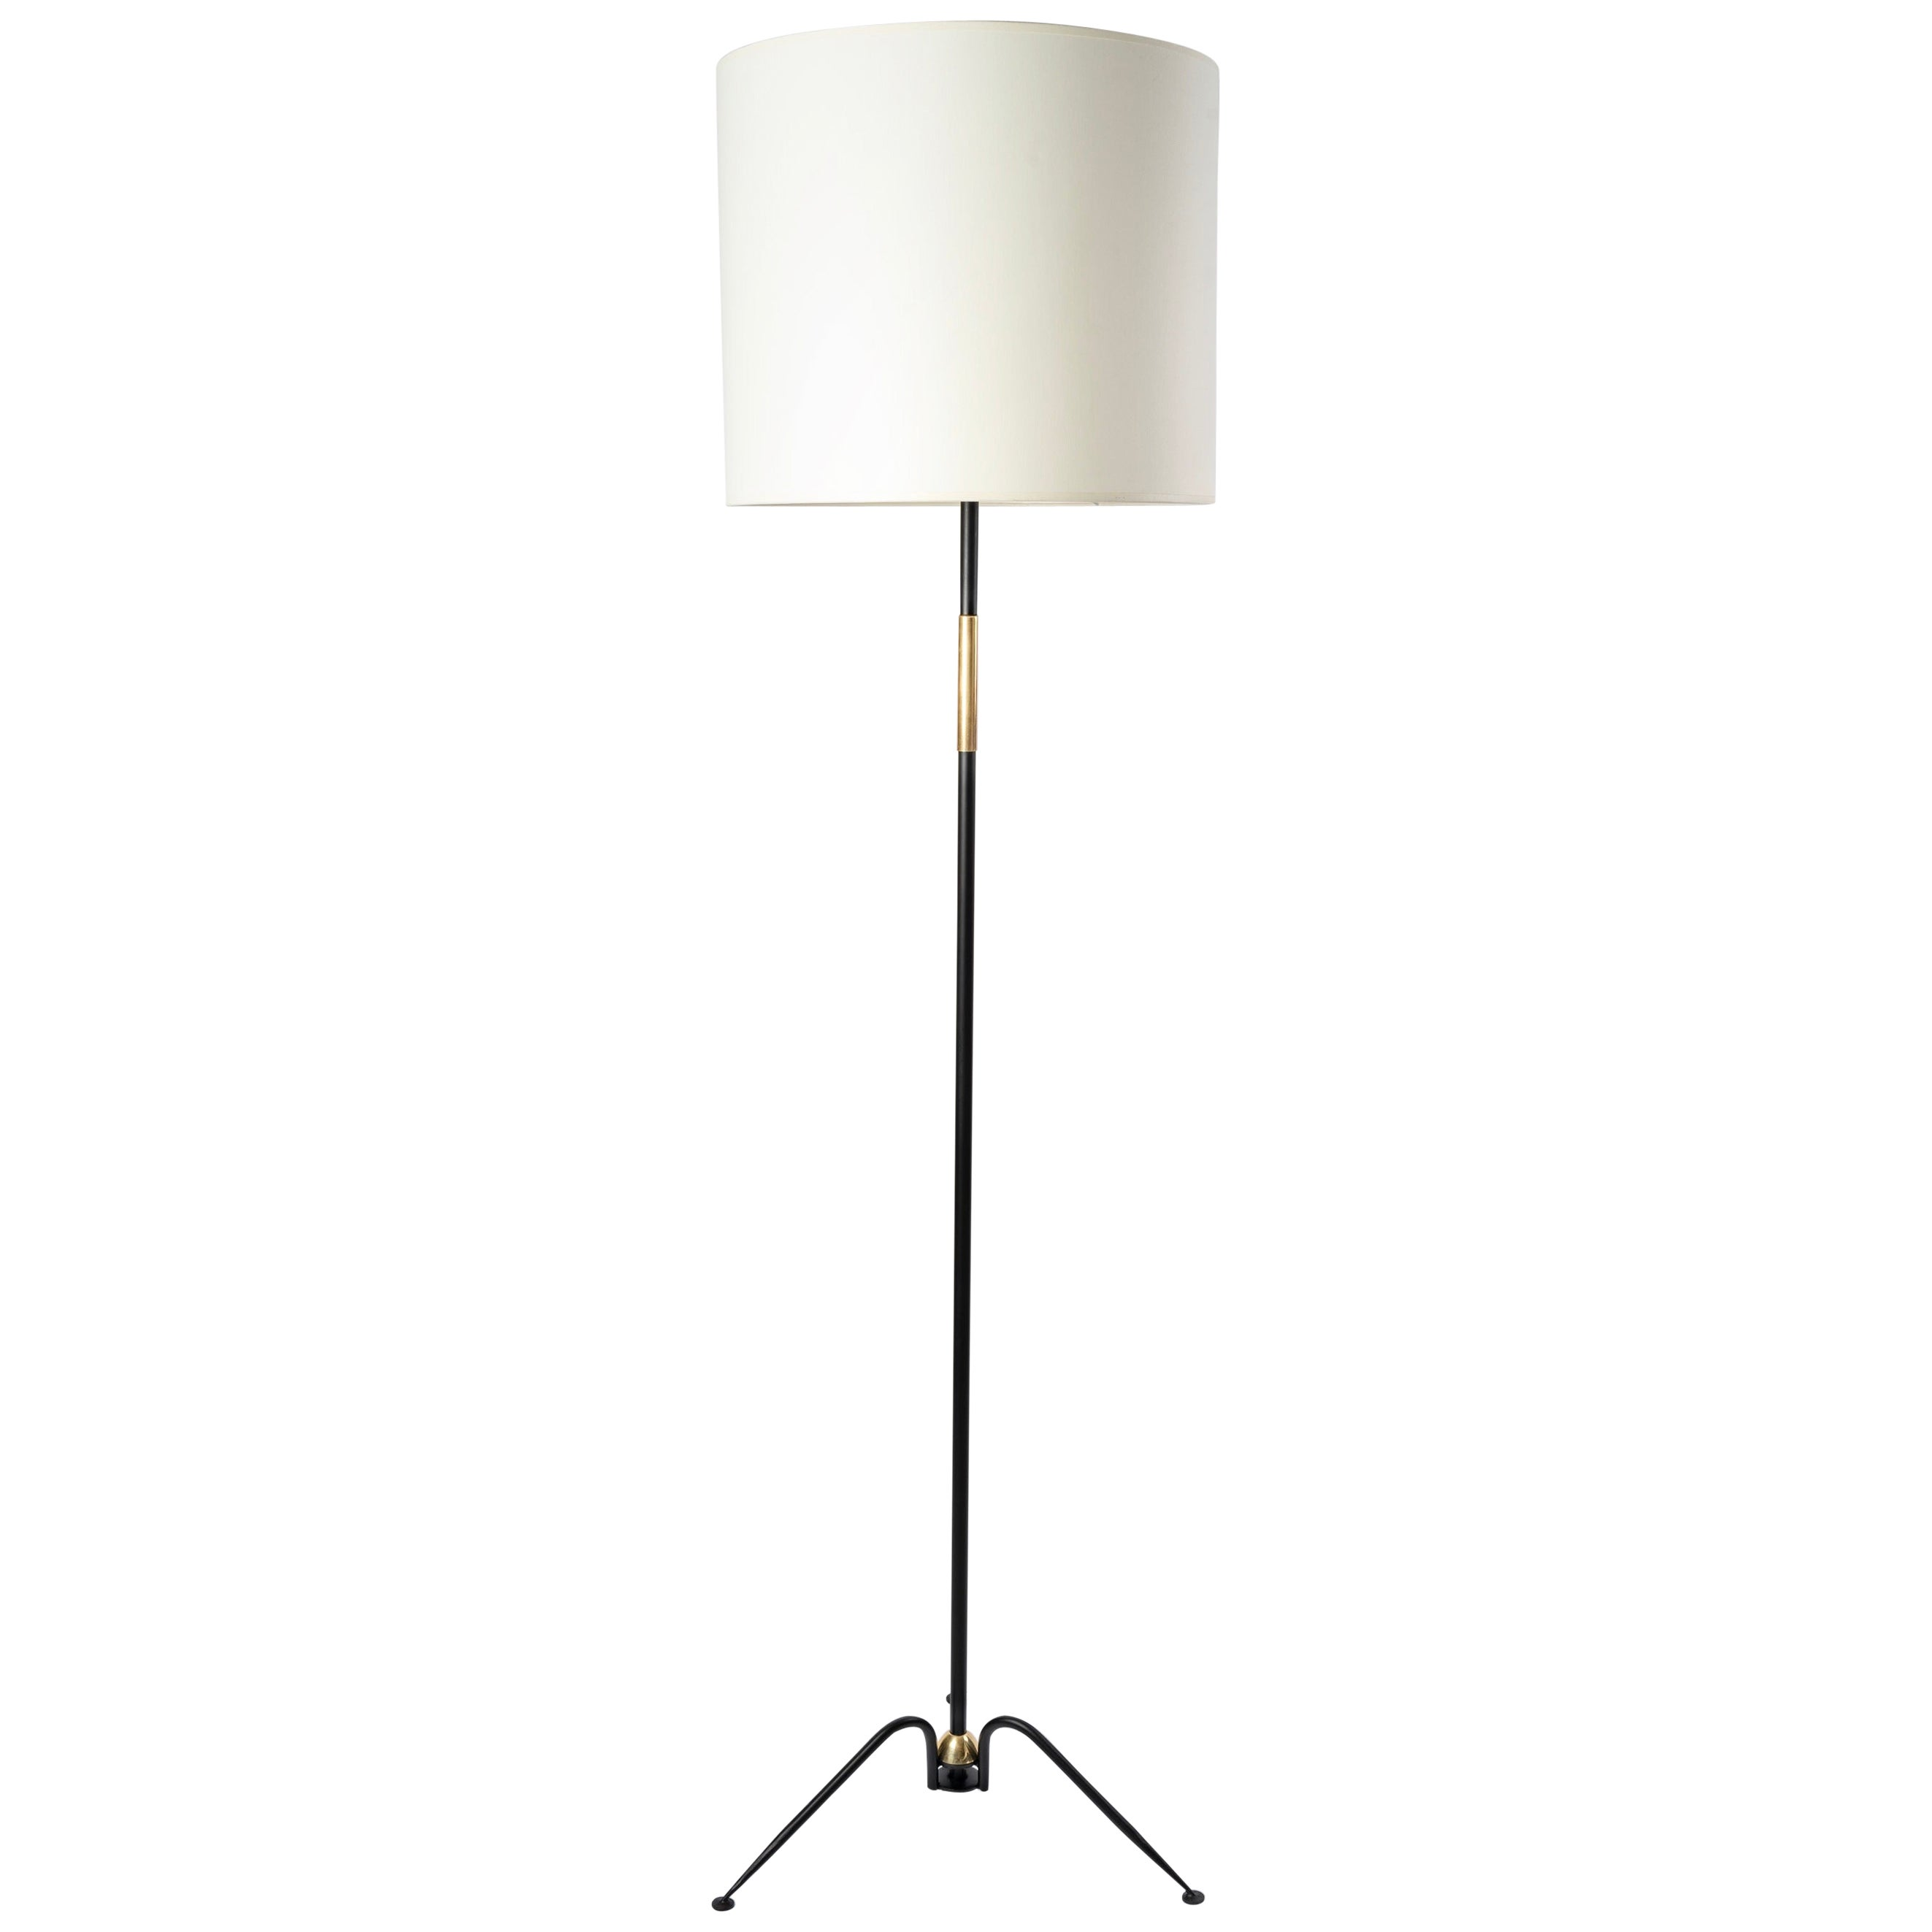 1950 Floor lamp from Maison Lunel 1950